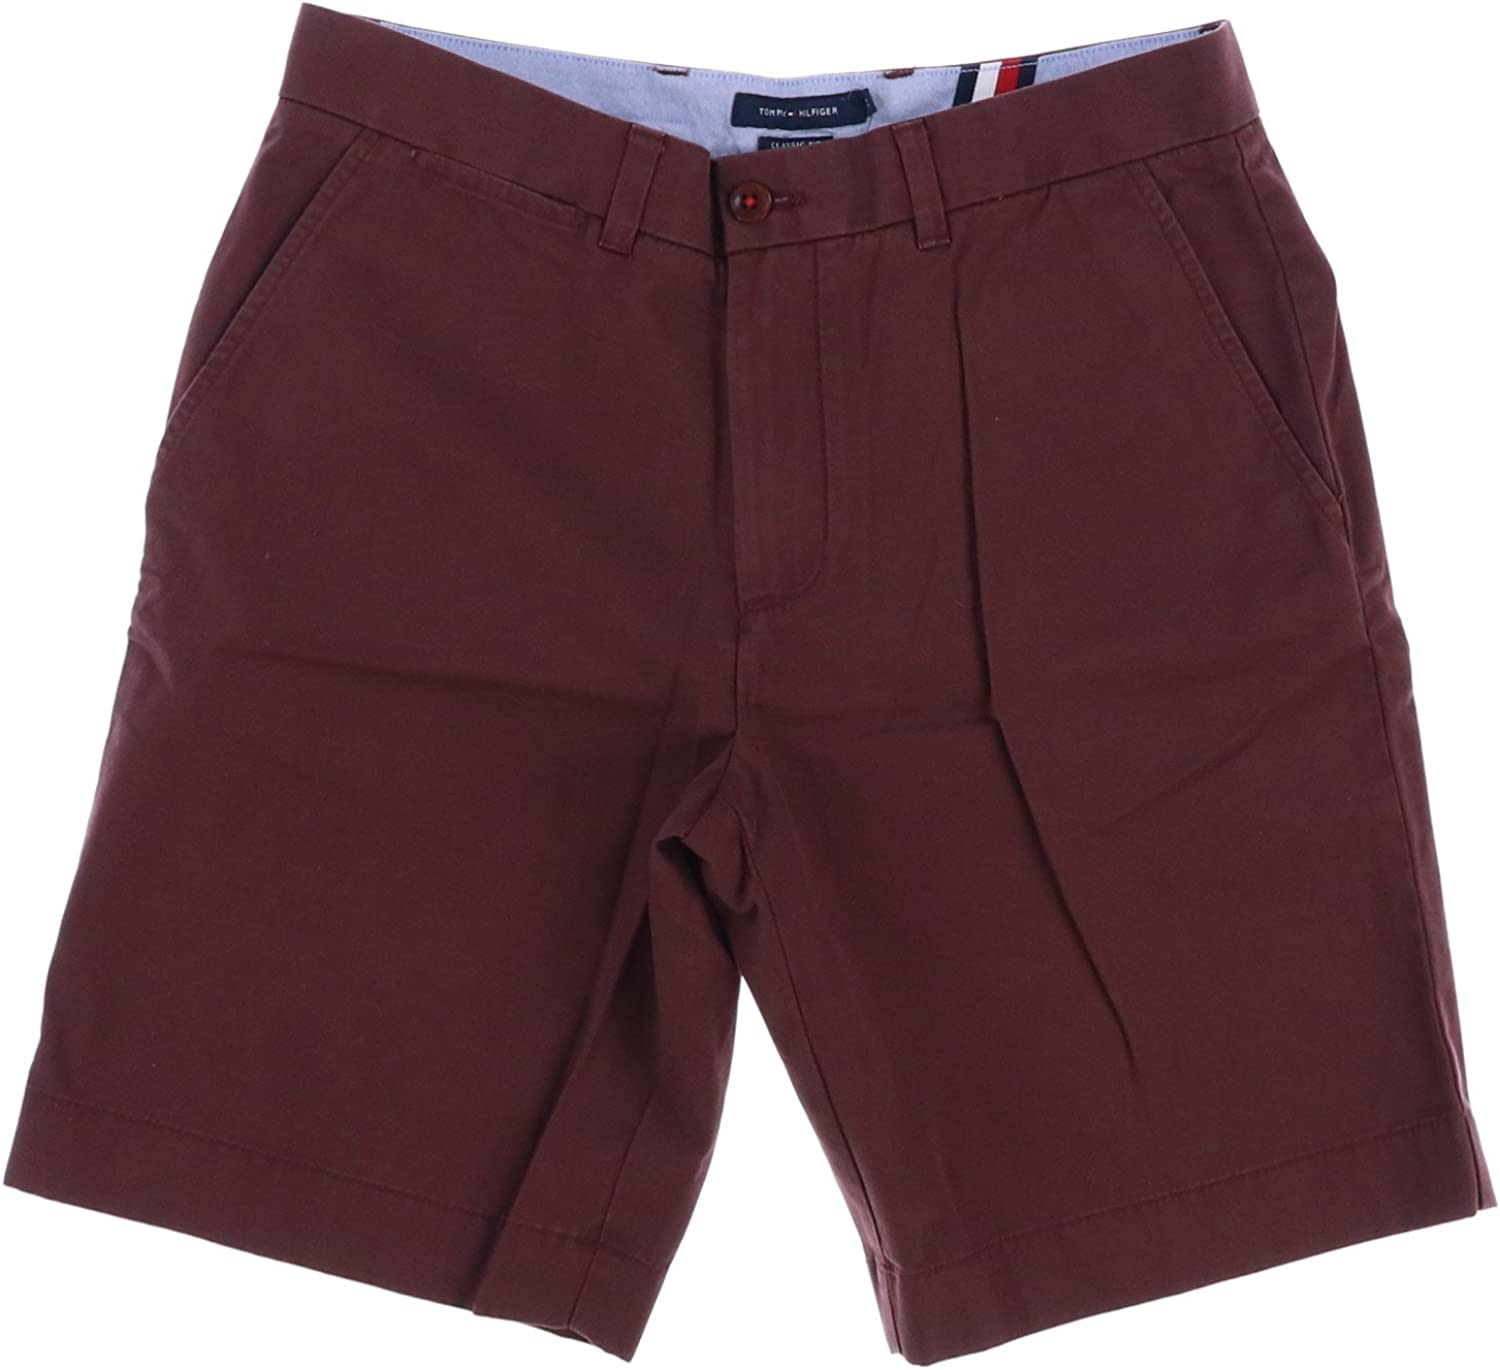 Tommy Hilfiger Quality inspection Milwaukee Mall Mens Flat Academy Shorts Front